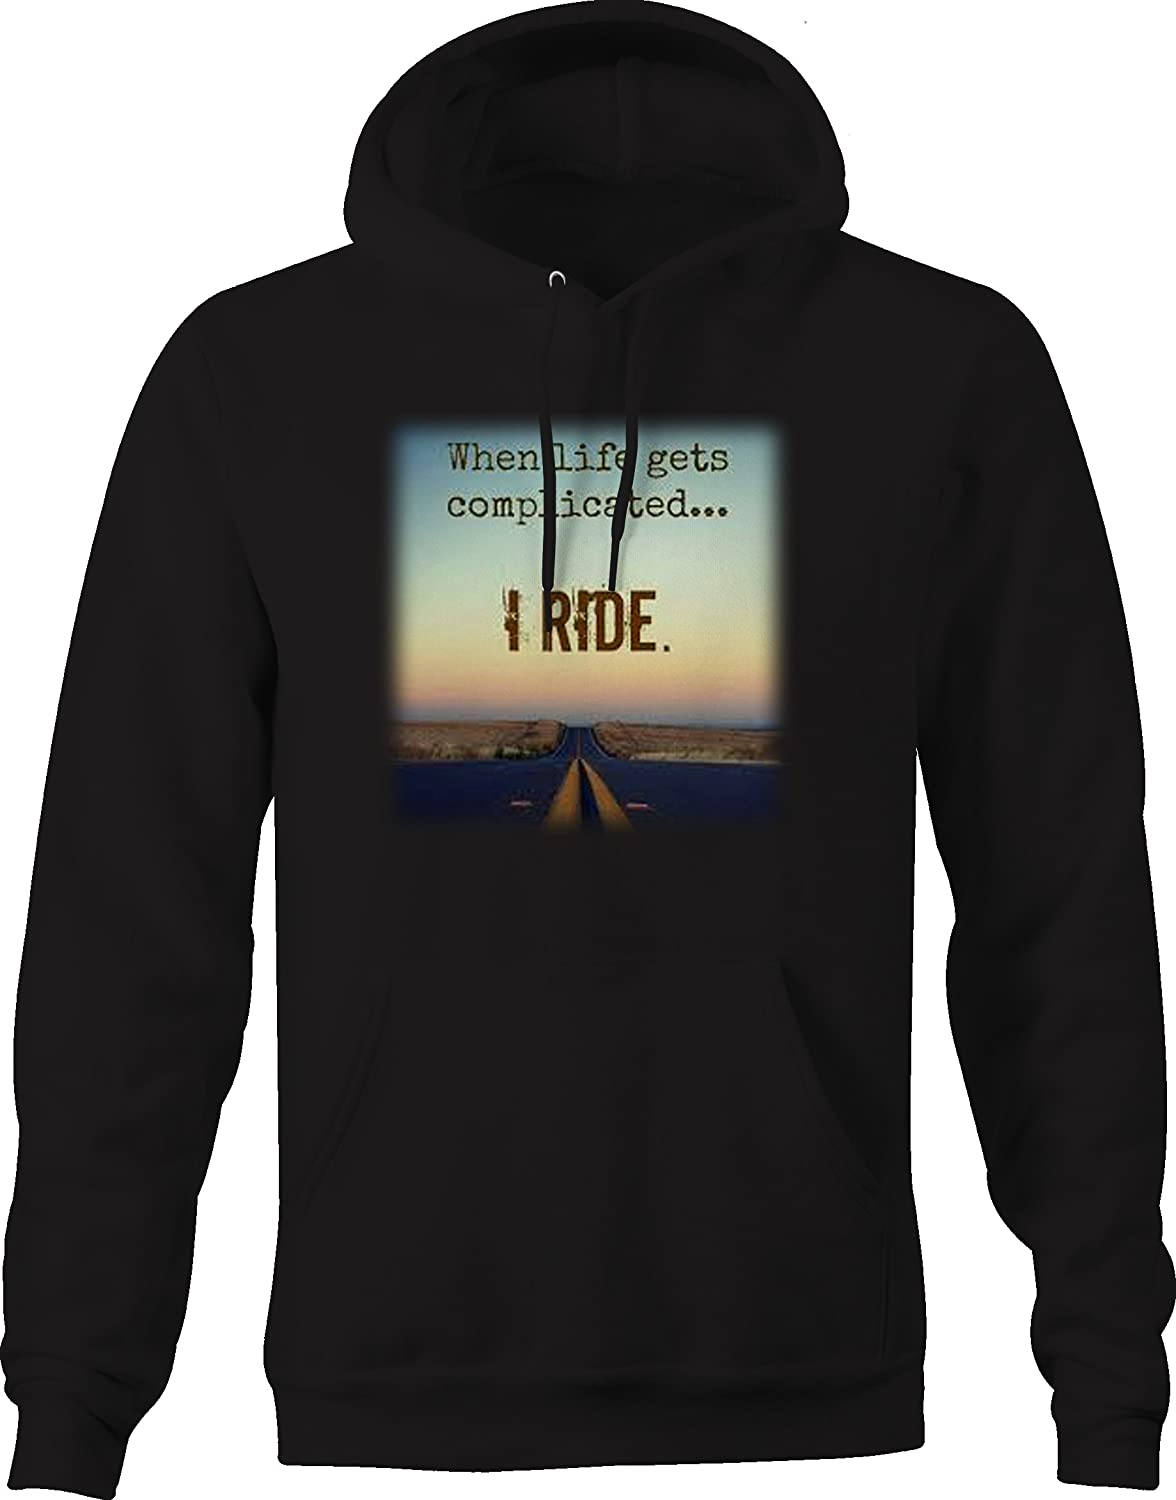 When Life Gets Complicated I Ride Motorcycles Graphic Hoodie for Men